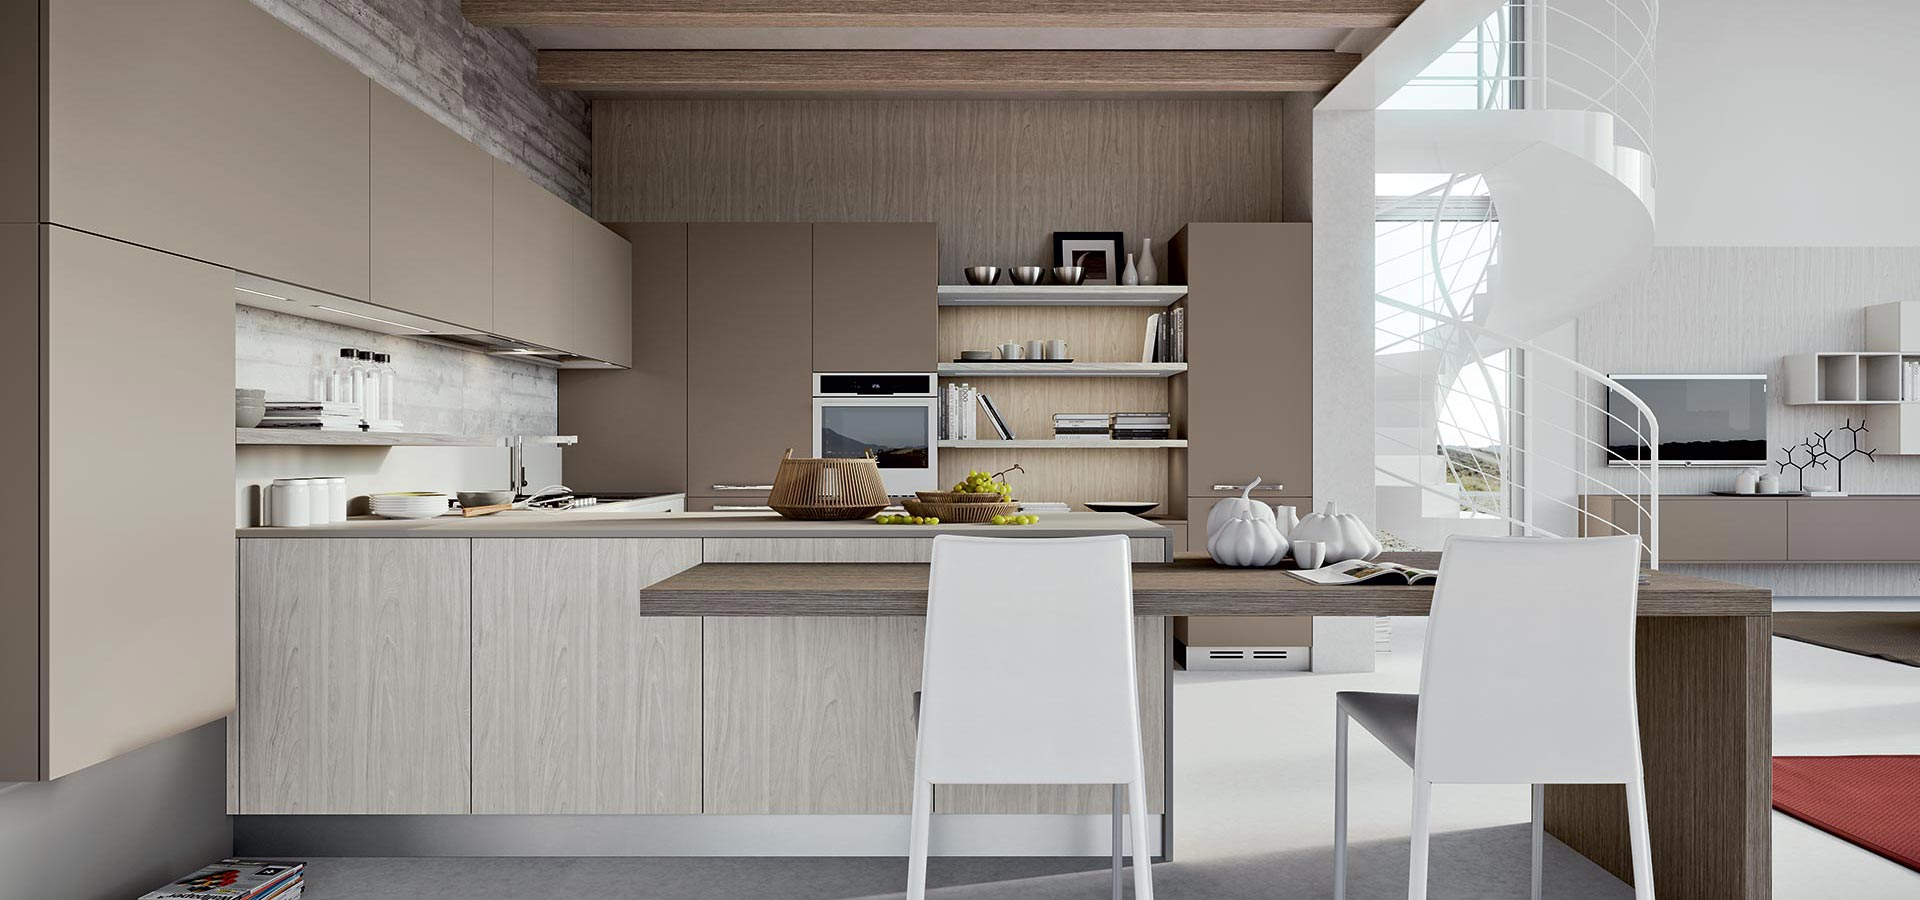 parchment or taupe will add warmth to a kitchen, especially when combined with woodgrain.